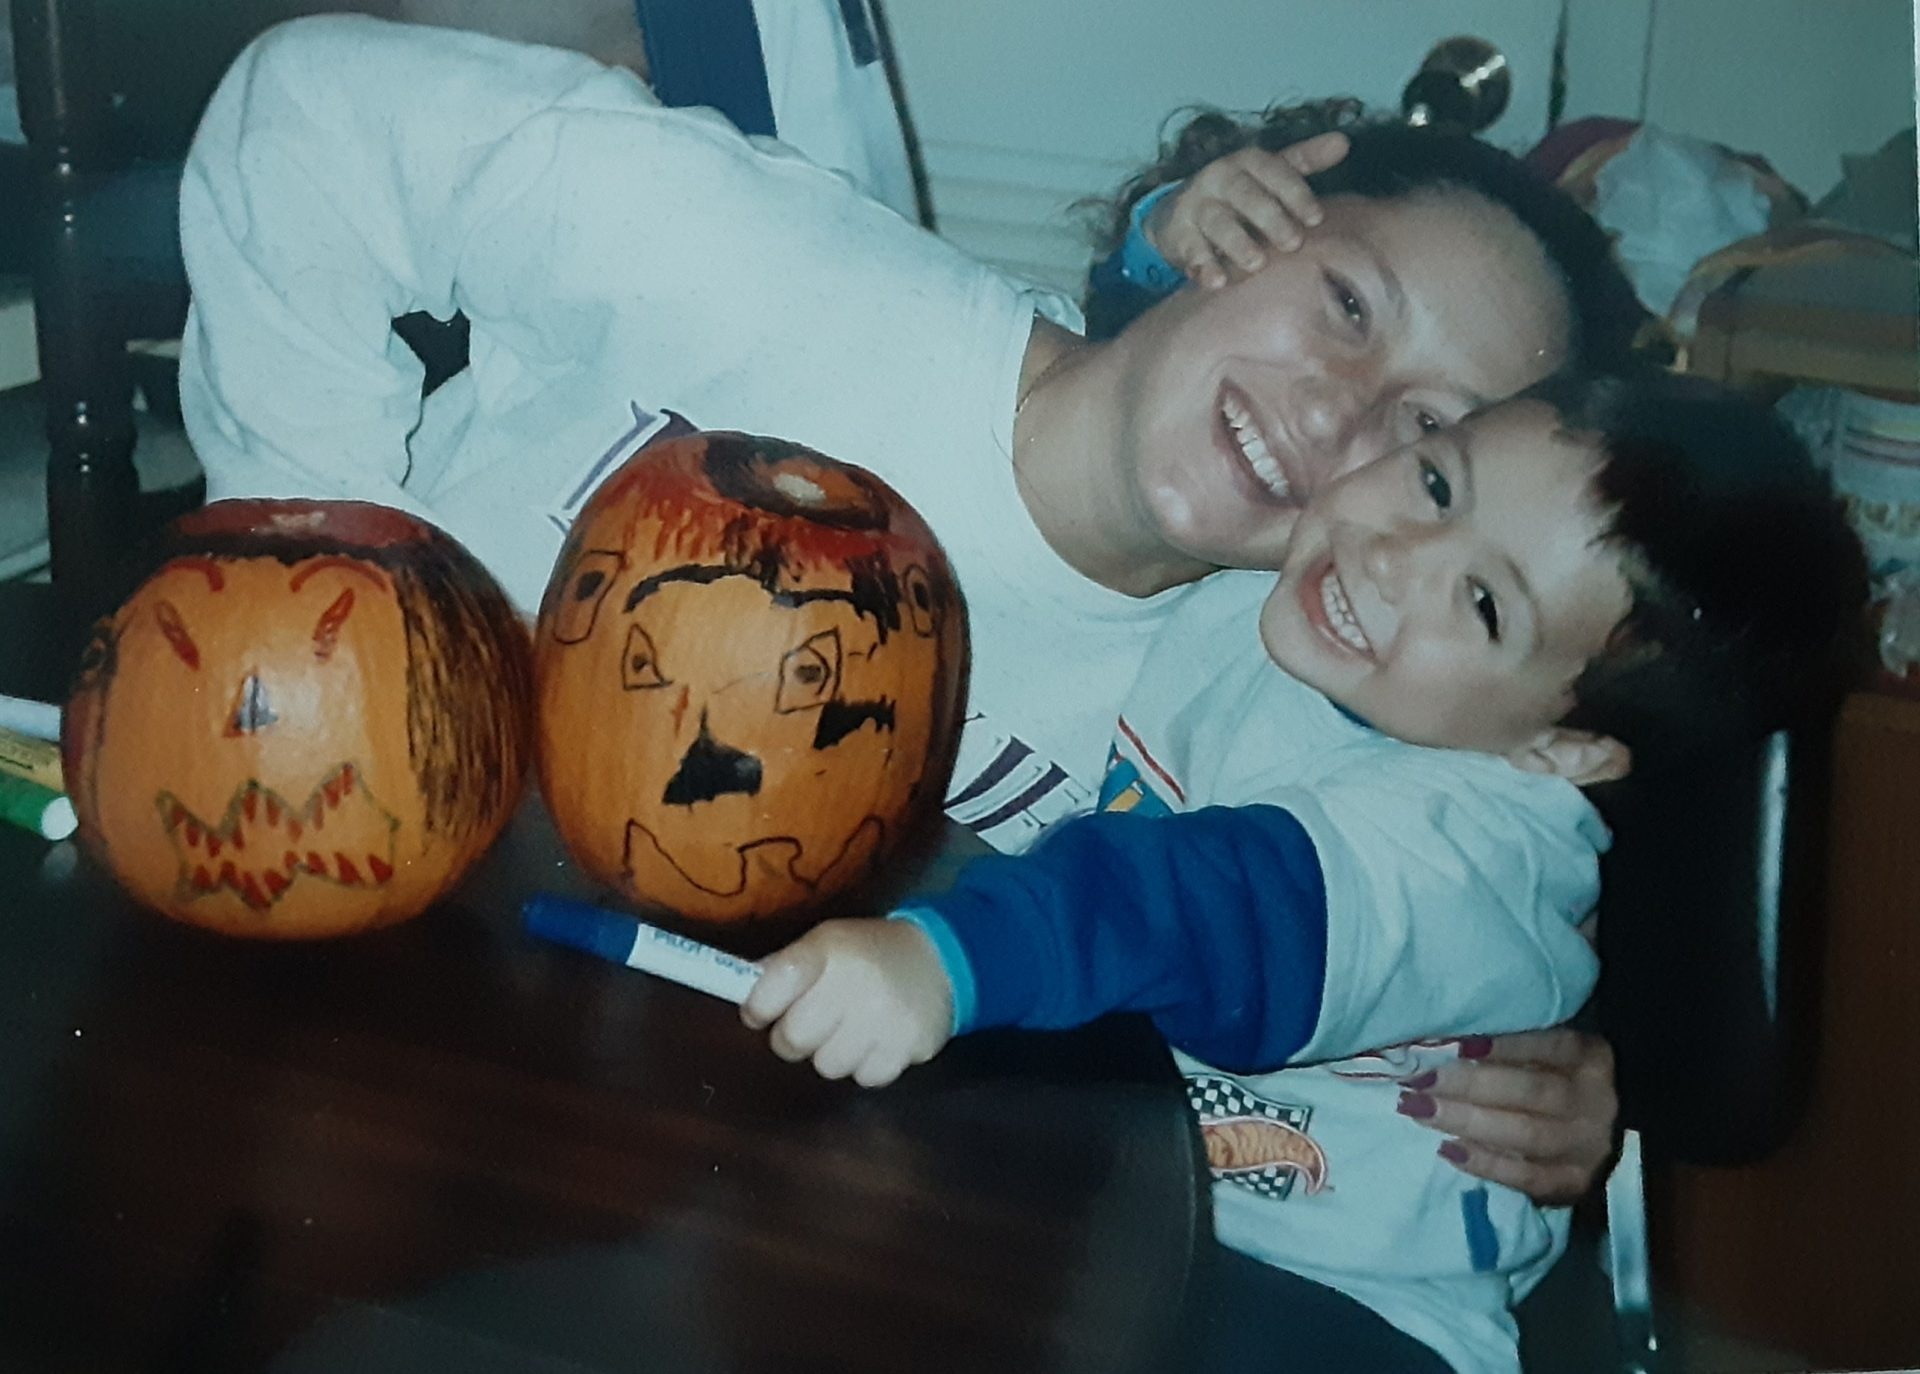 Anthony loved carving pumpkins and making faces on them...I miss you so much!